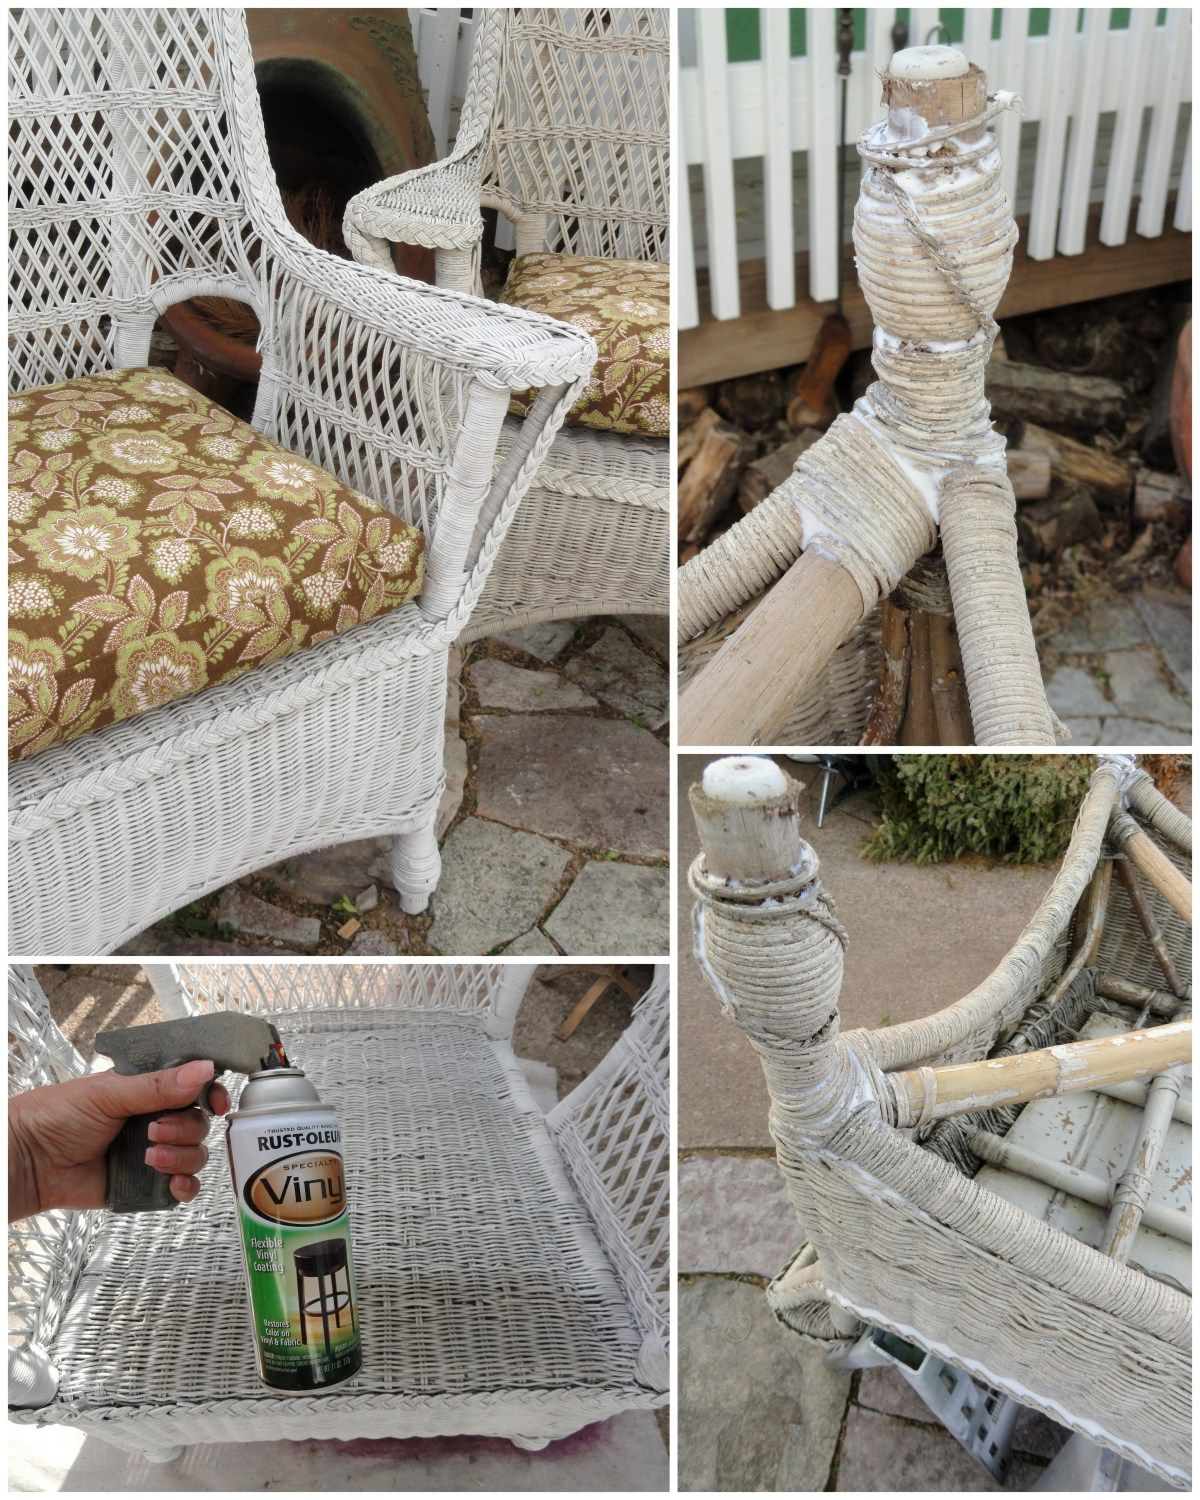 Captivating Repairing My Old Wicker Chairs